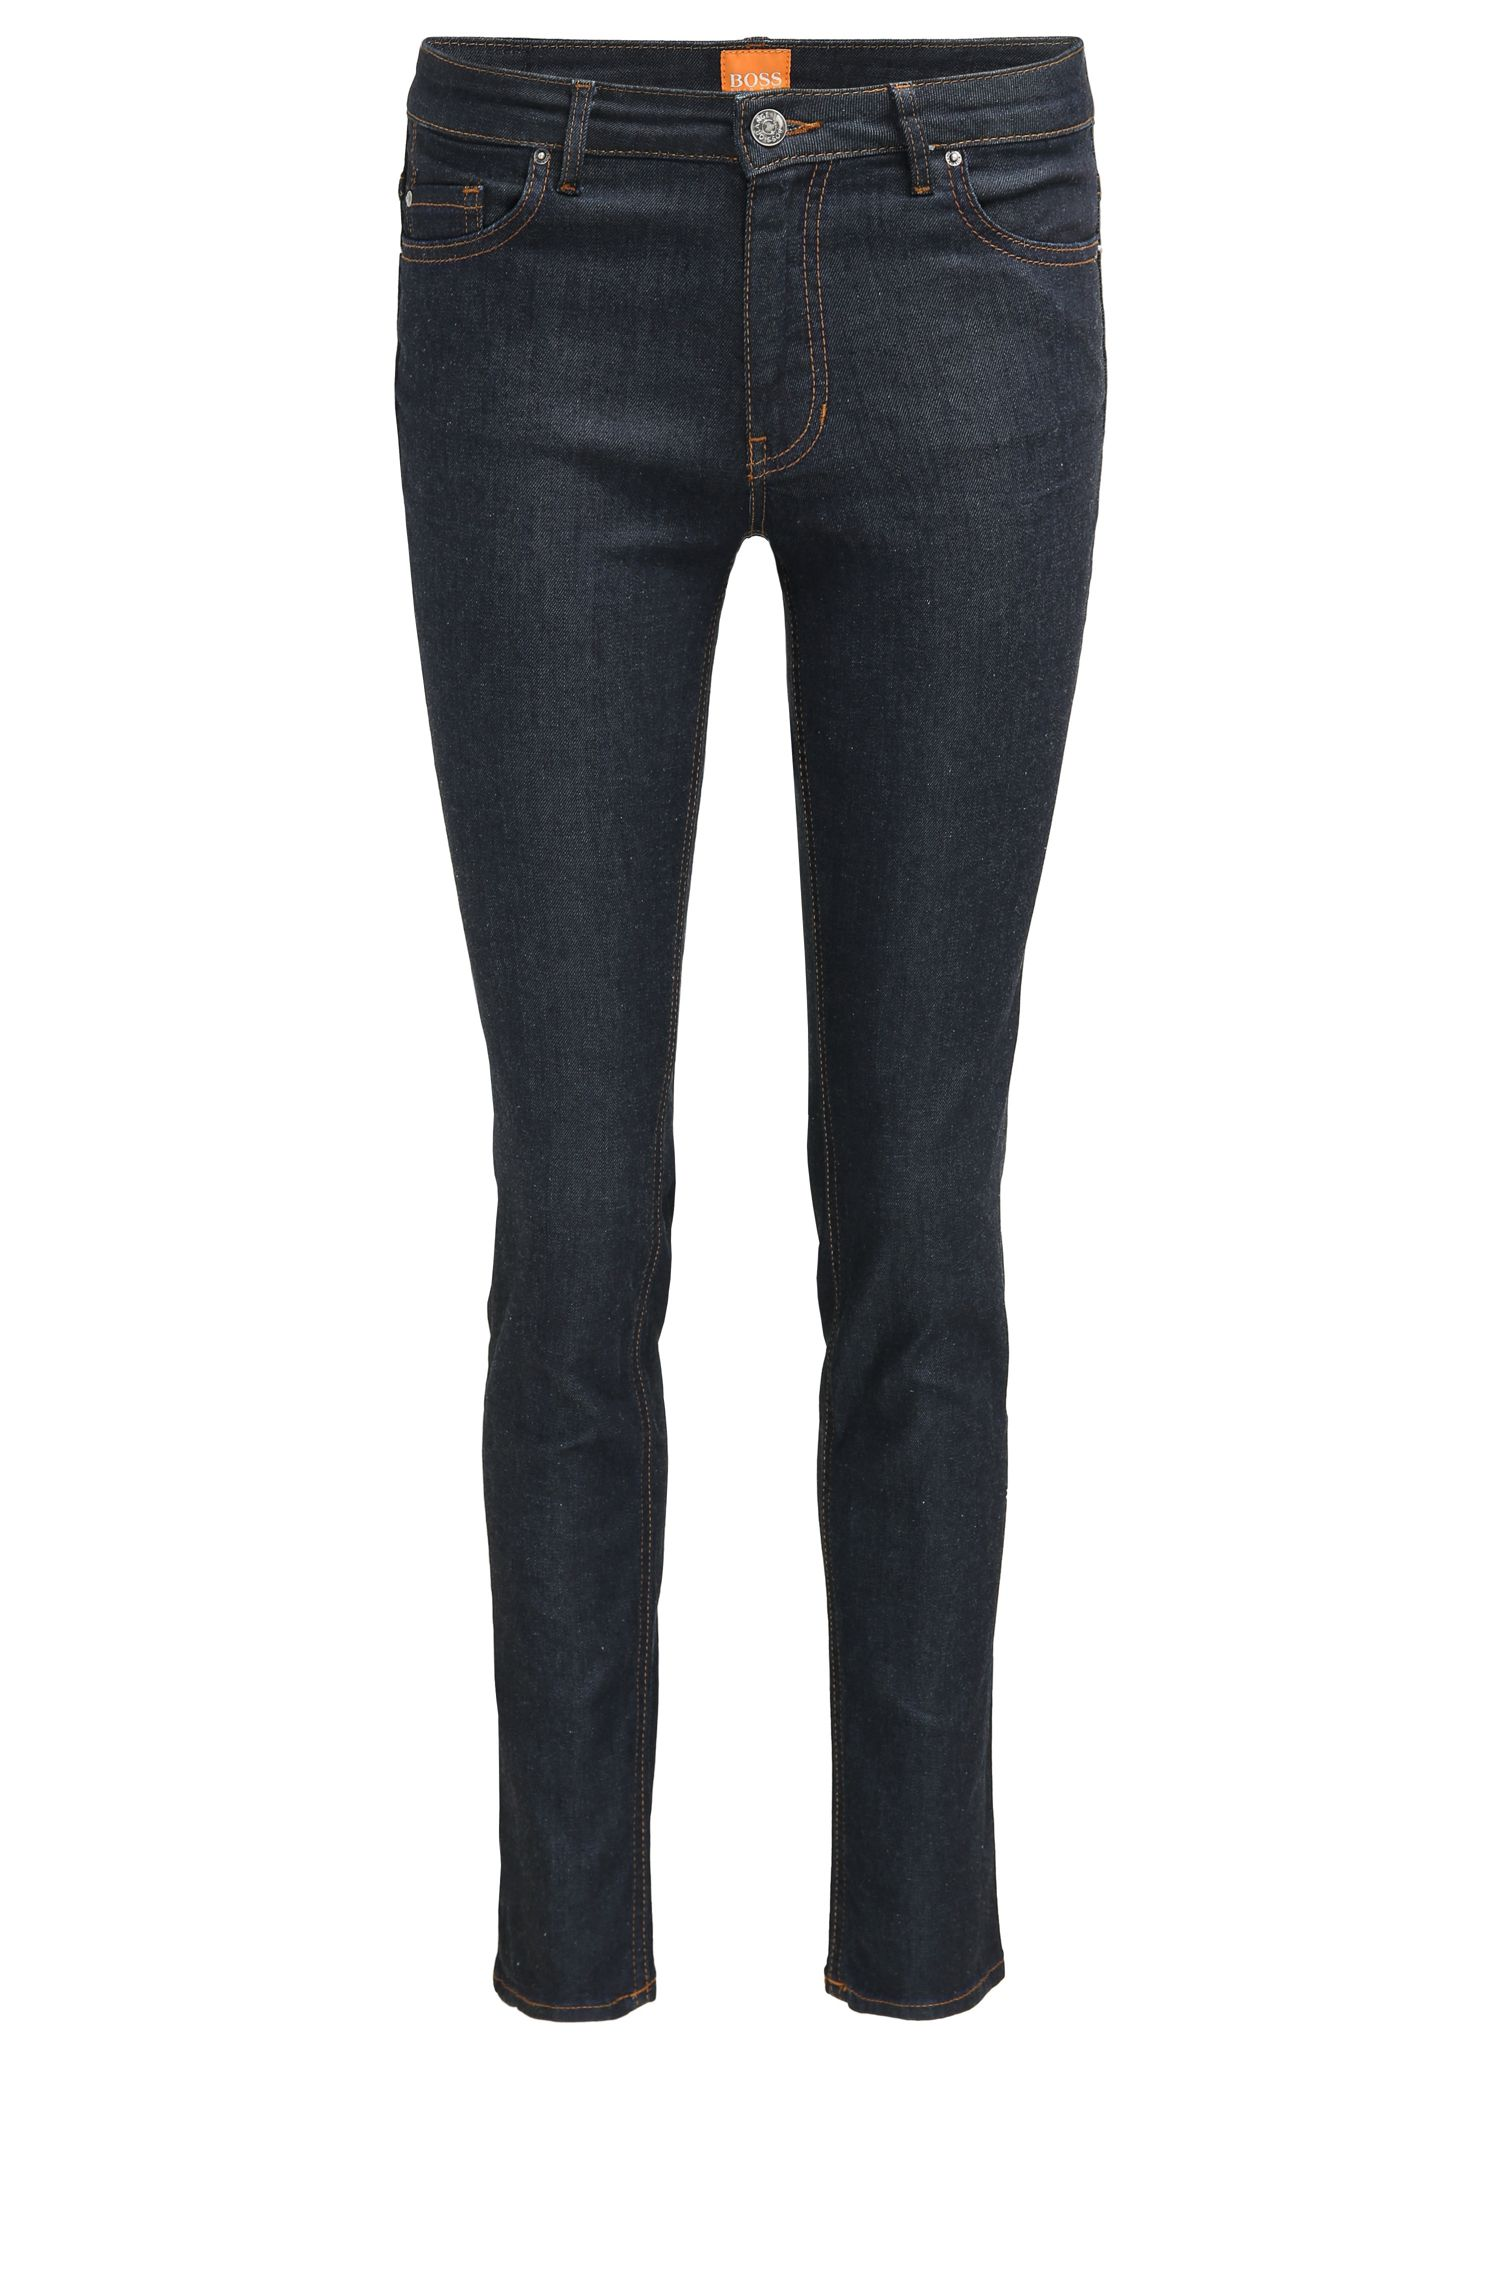 Jeans Slim Fit en denim stretch brut